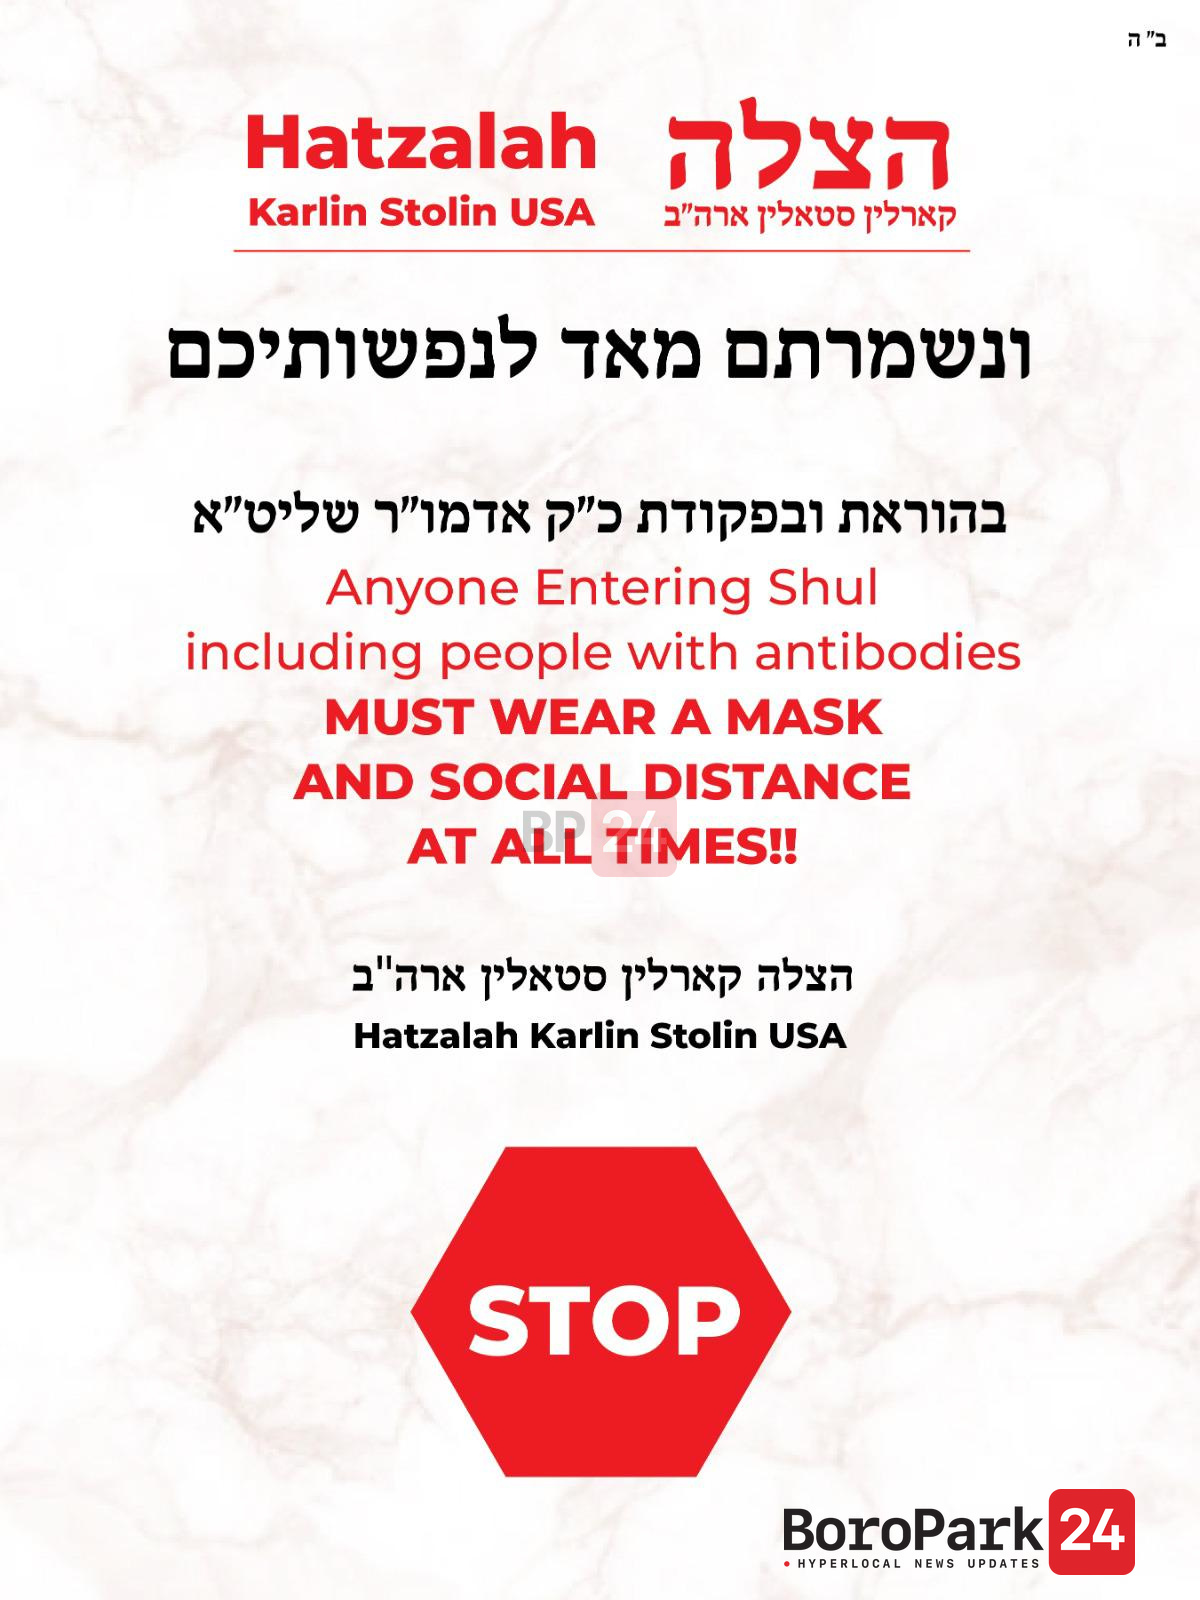 Stoliner Rebbe: Anyone walking into a Stoliner Shul Must Wear a Mask and Practice Social Distancing